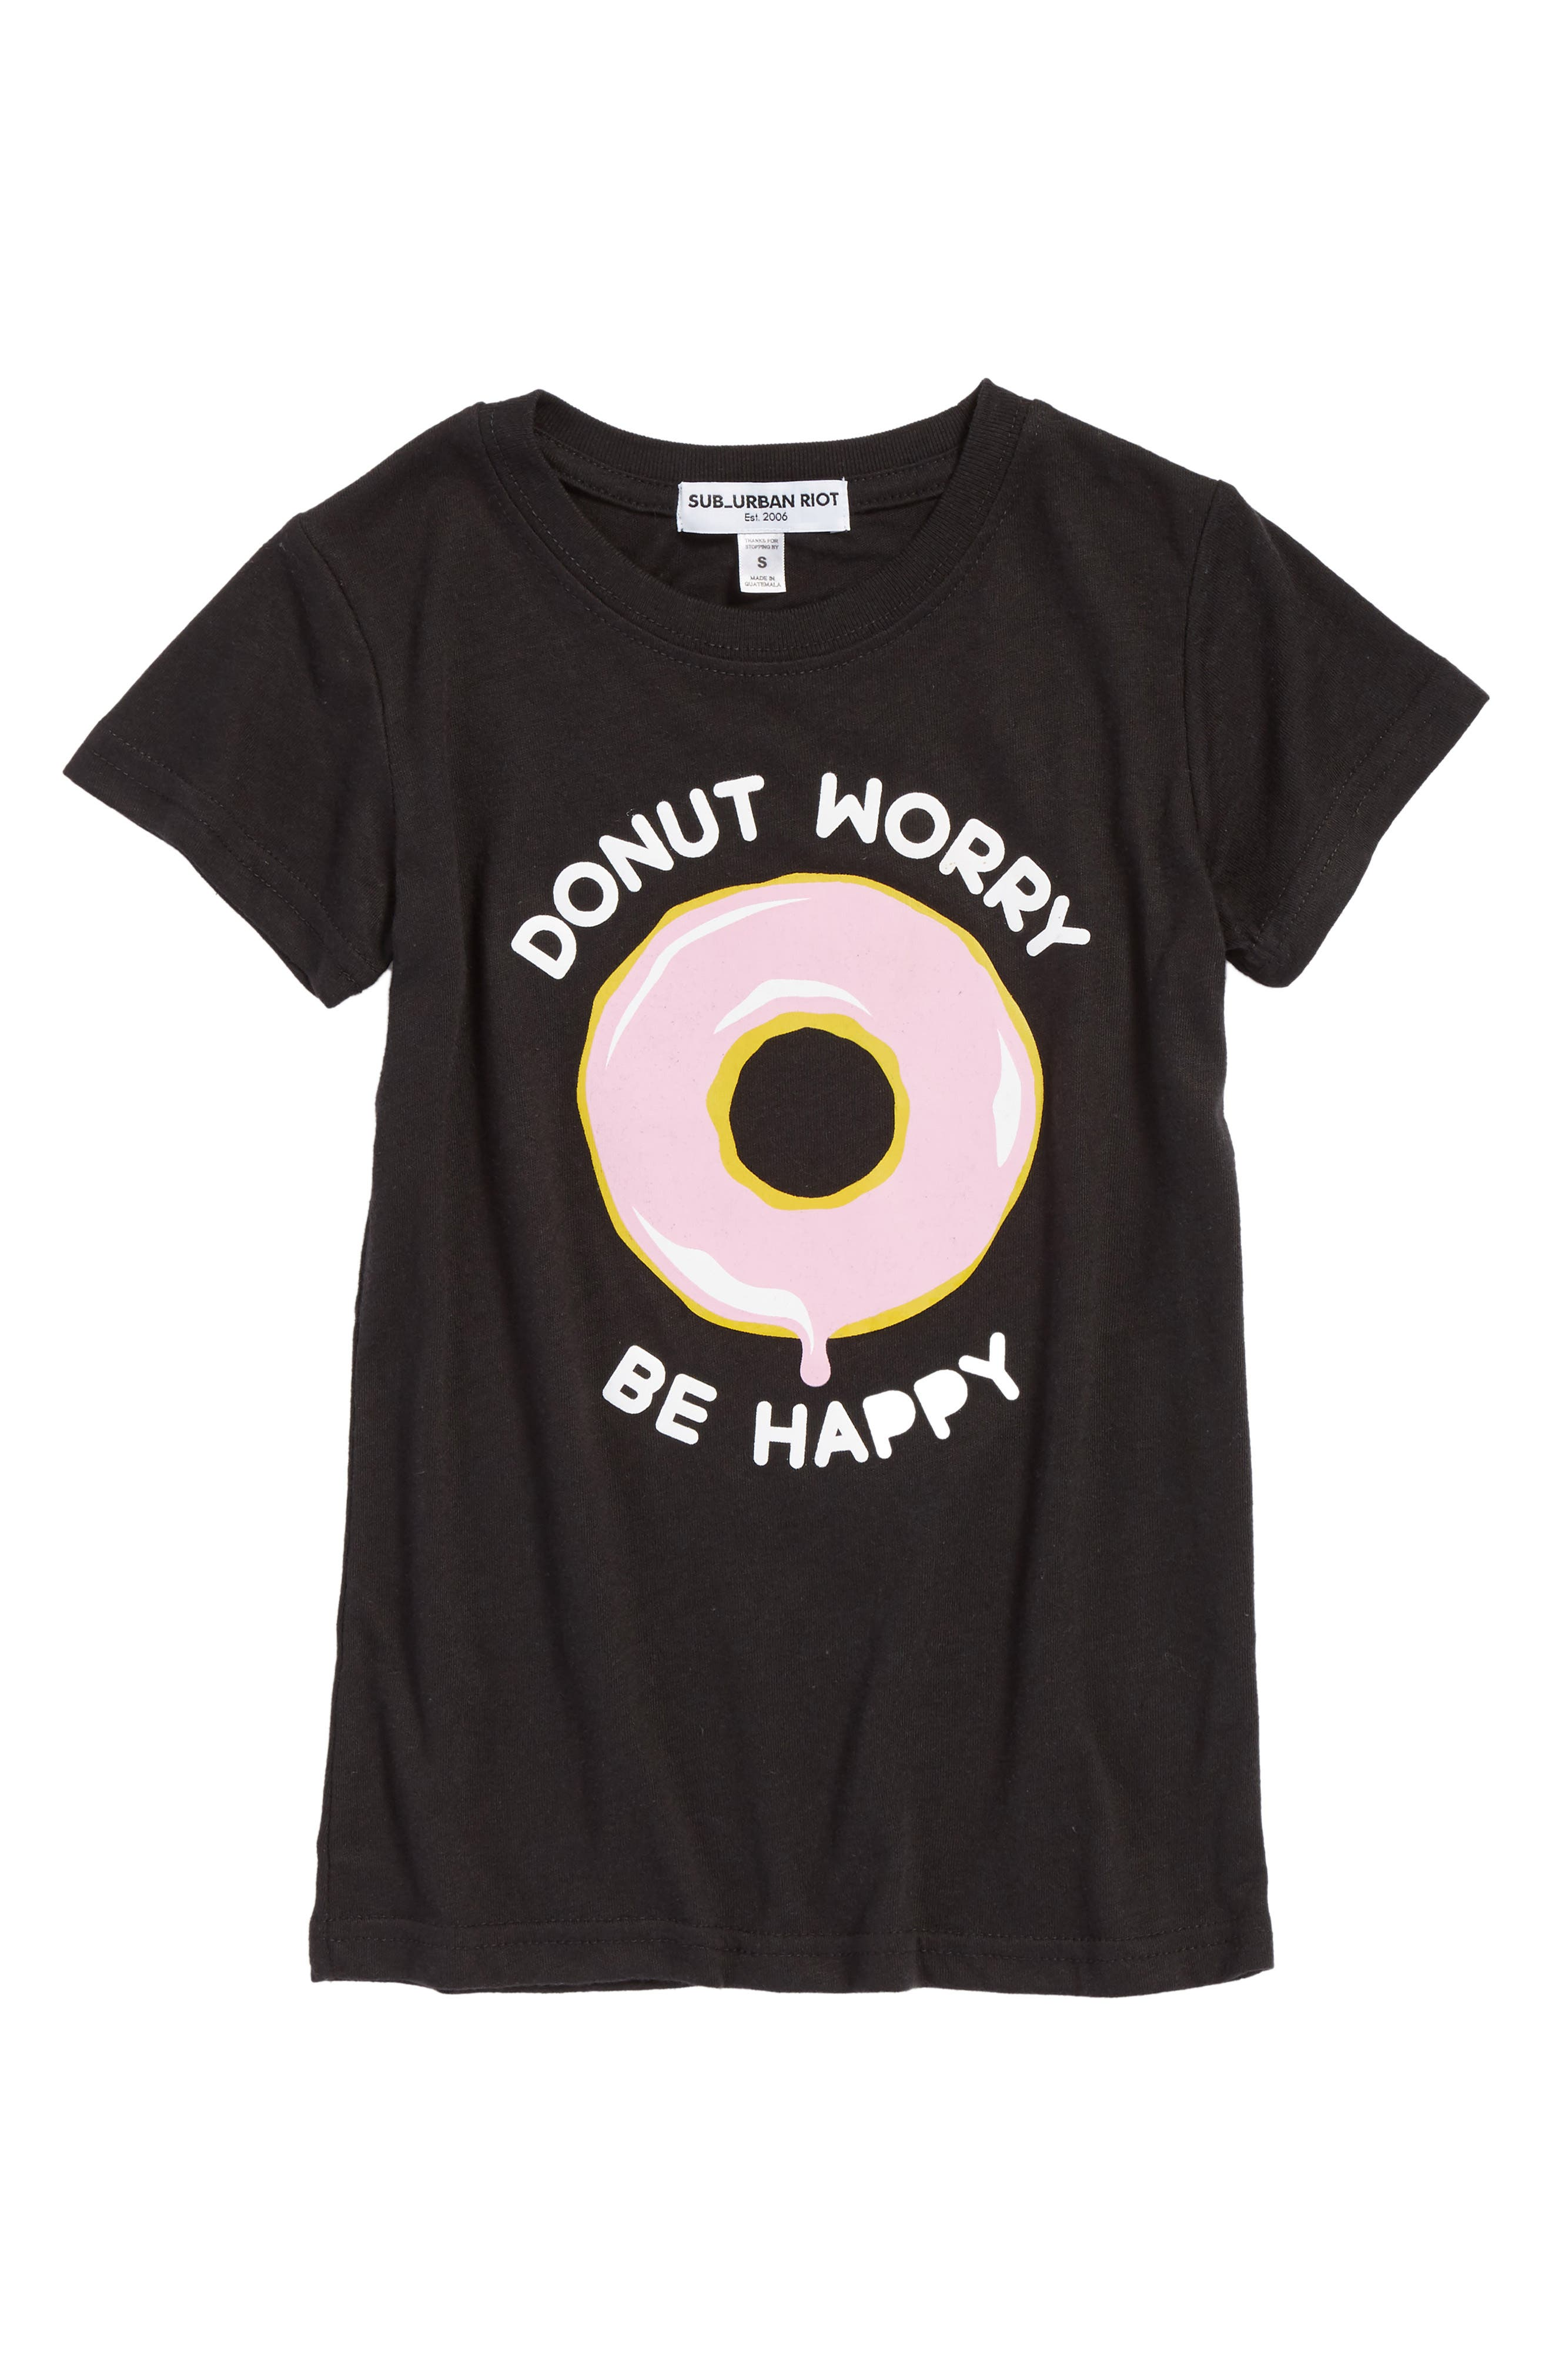 Donut Worry Graphic Tee,                         Main,                         color, Black